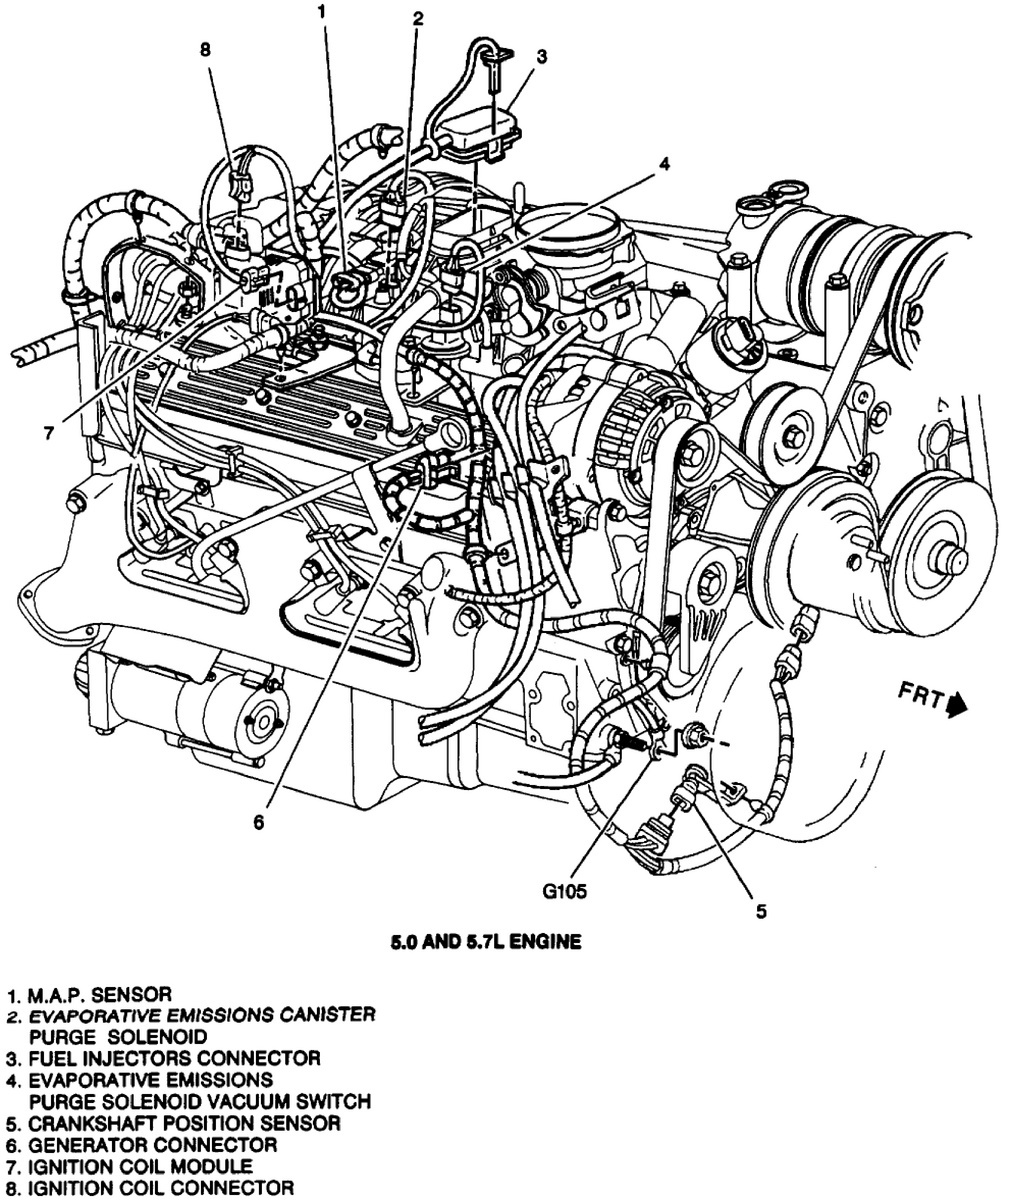 wrg 5771] 96 chevy lumina engine diagram 1993 Mazda Protege Engine Diagram